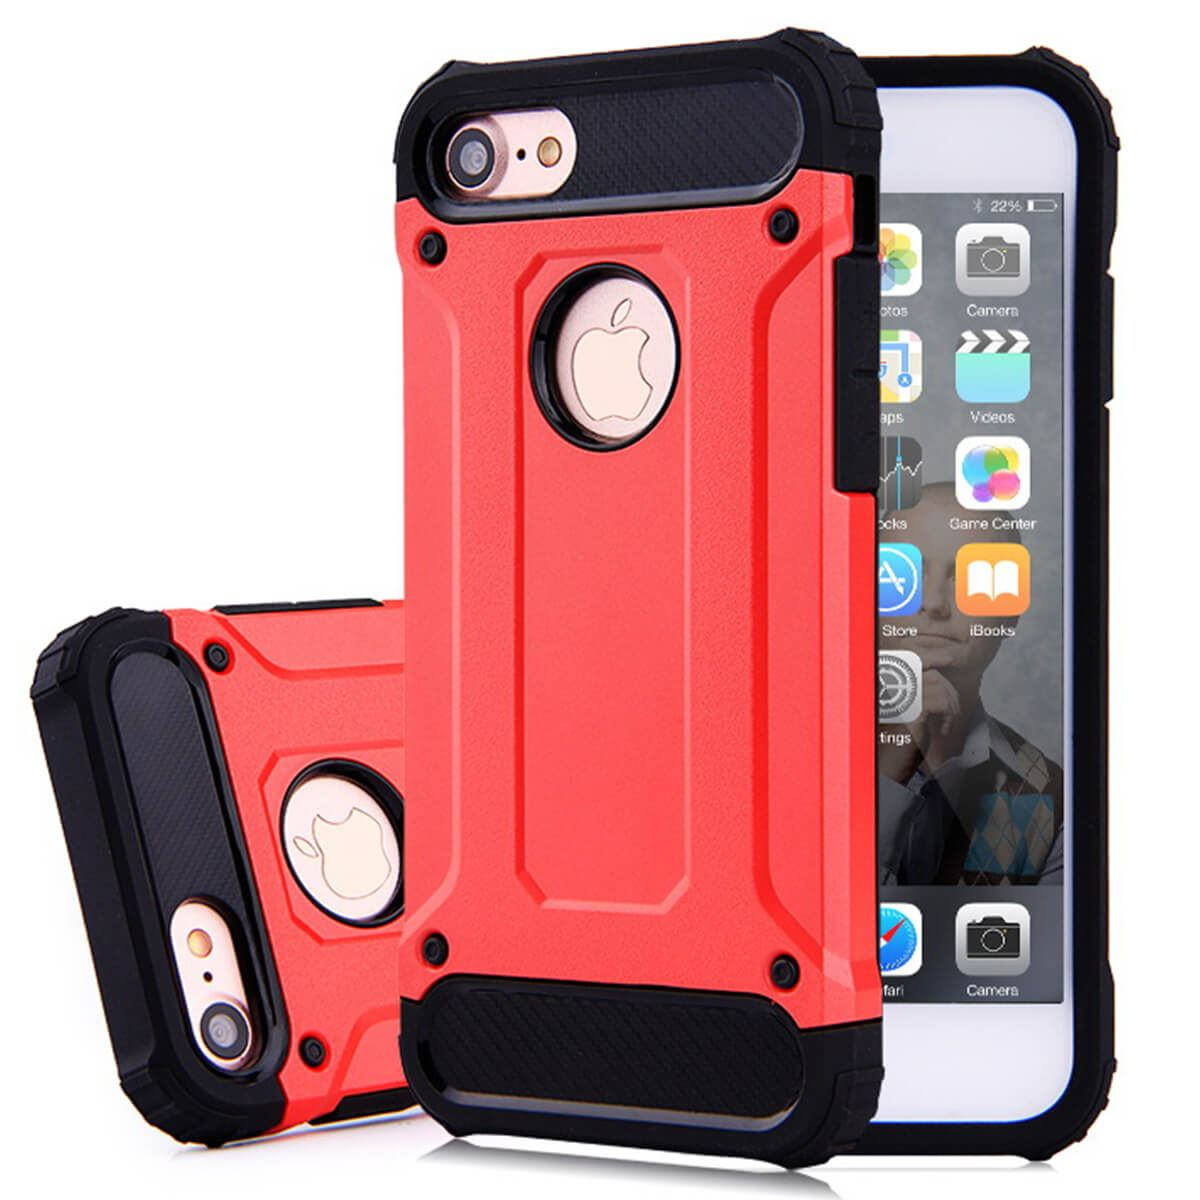 Shockproof-Bumper-Case-For-Apple-iPhone-10-X-8-7-Plus-6s-5s-Hybrid-Armor-Rugged thumbnail 19